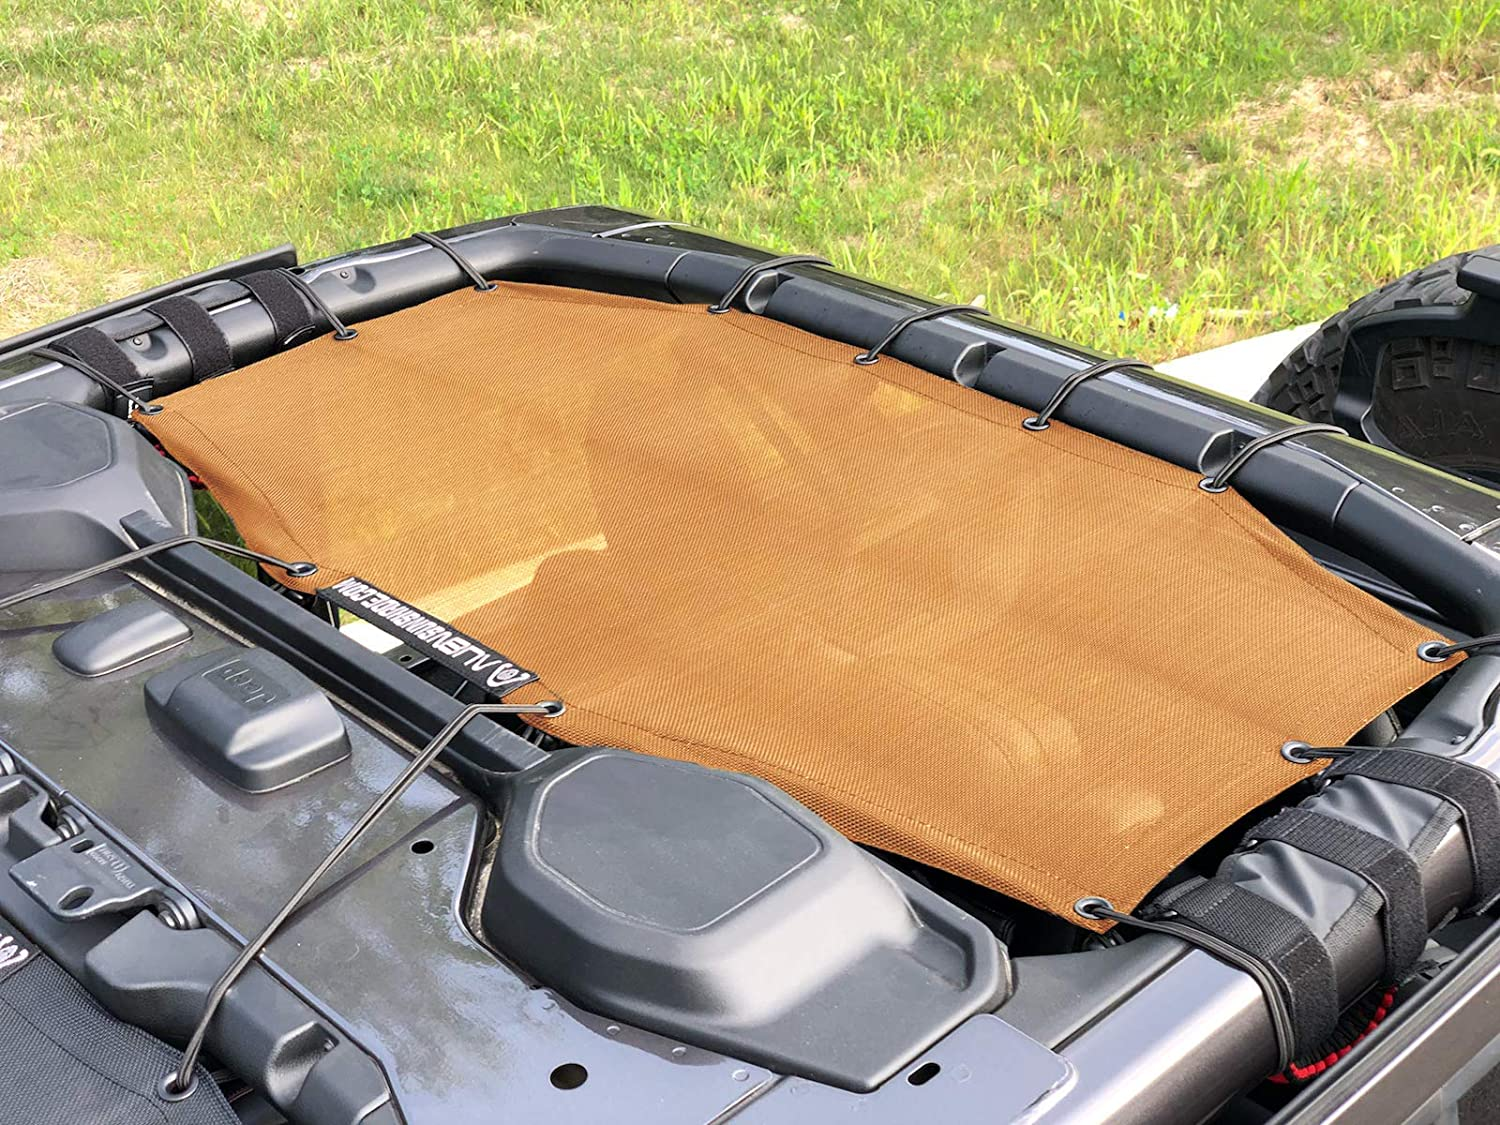 ALIEN SUNSHADE Jeep Wrangler JLU (2018-Current) Rear Sun Shade Mesh Top Cover (Orange) – 10 Year Warranty – Blocks UV, Wind, Noise